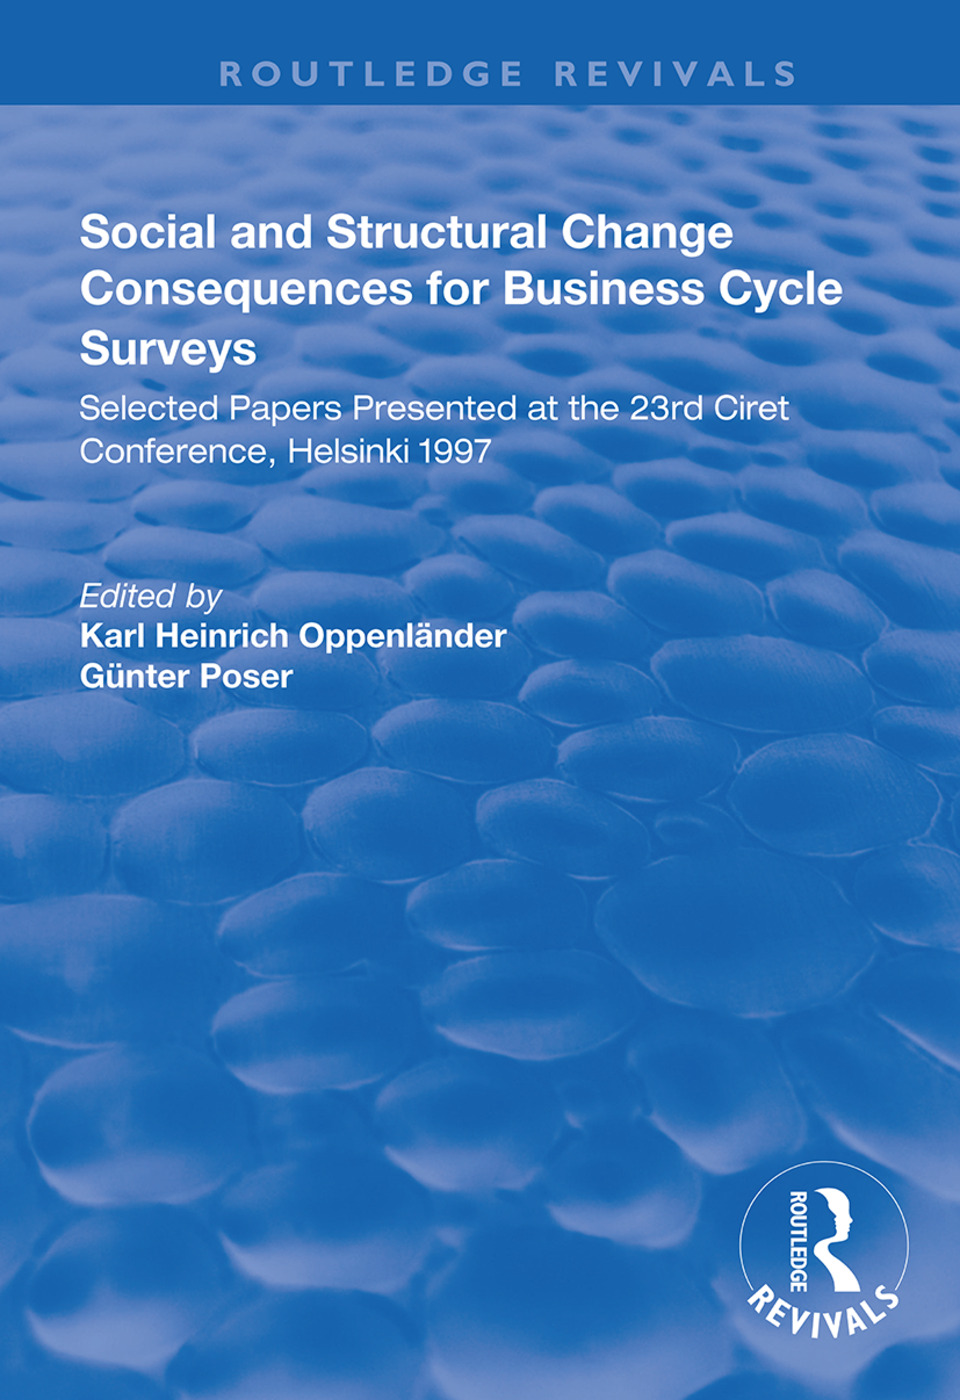 Social and Structural Change: Consequences for Business Cycle Surveys - Selected Papers Presented at the 23rd Ciret Conference, Helsinki, 1st Edition (Paperback) book cover